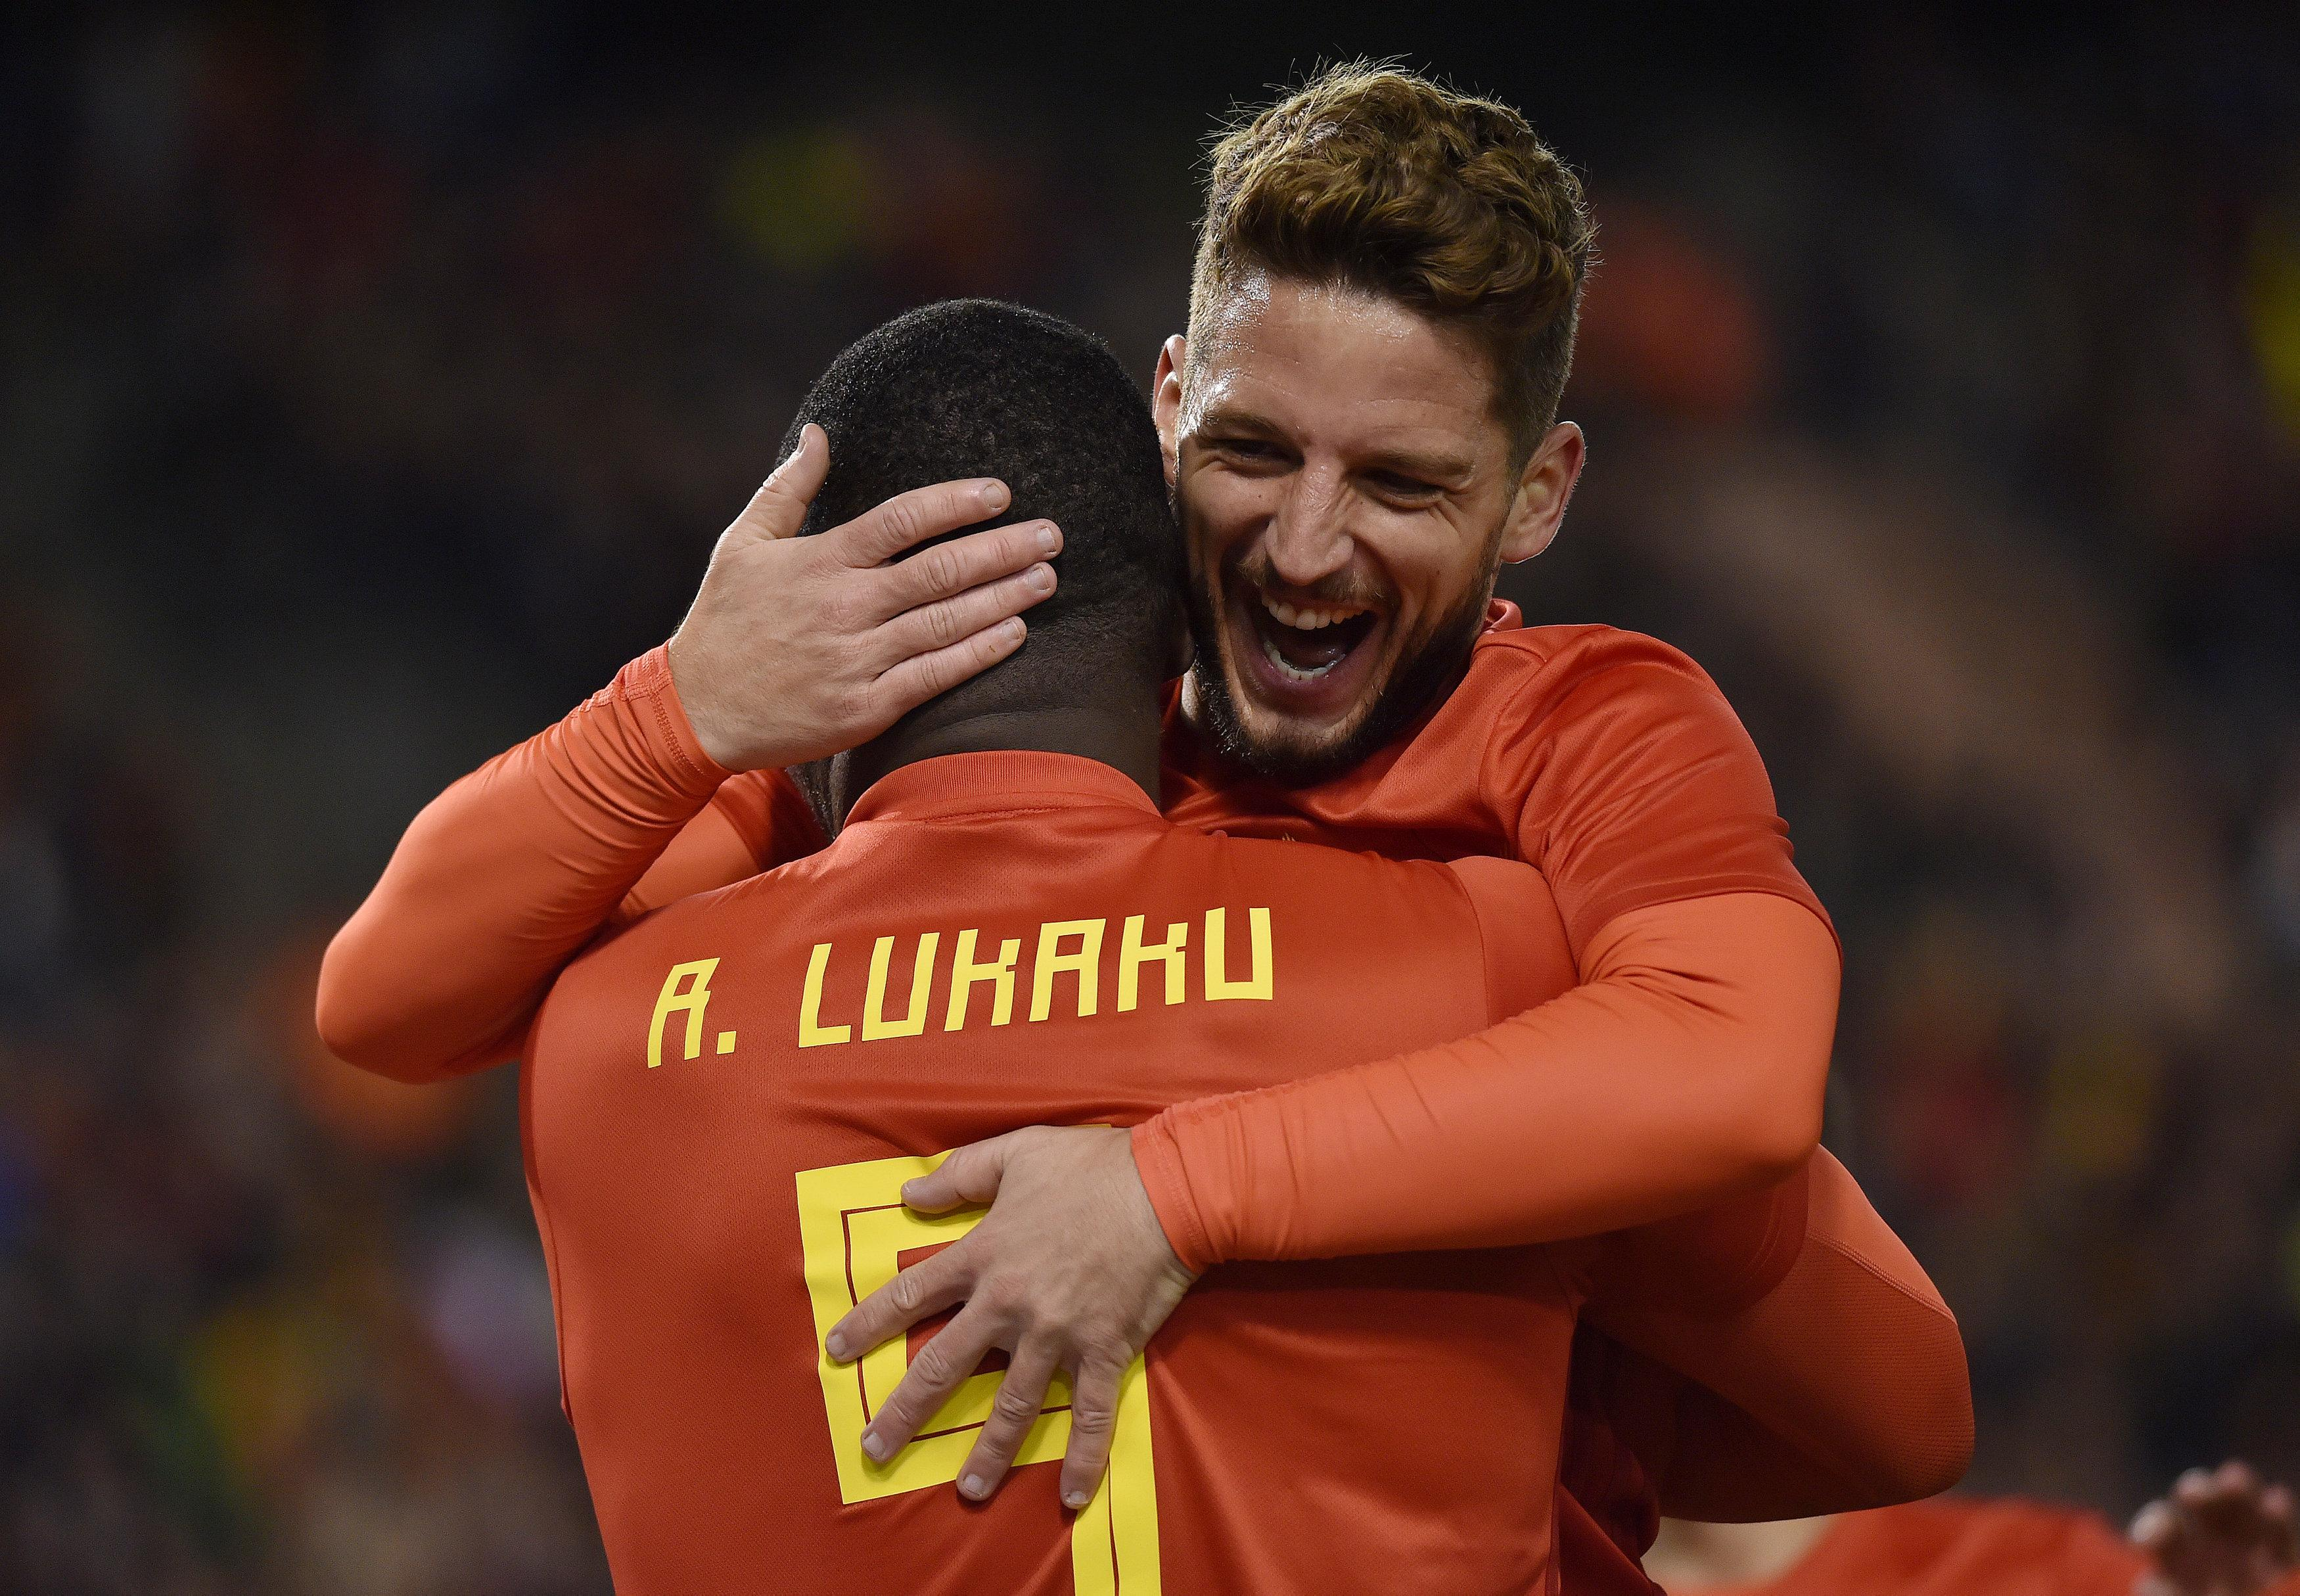 Belgium's squad is stacked with star-talent, including Napoli star Dries Mertens